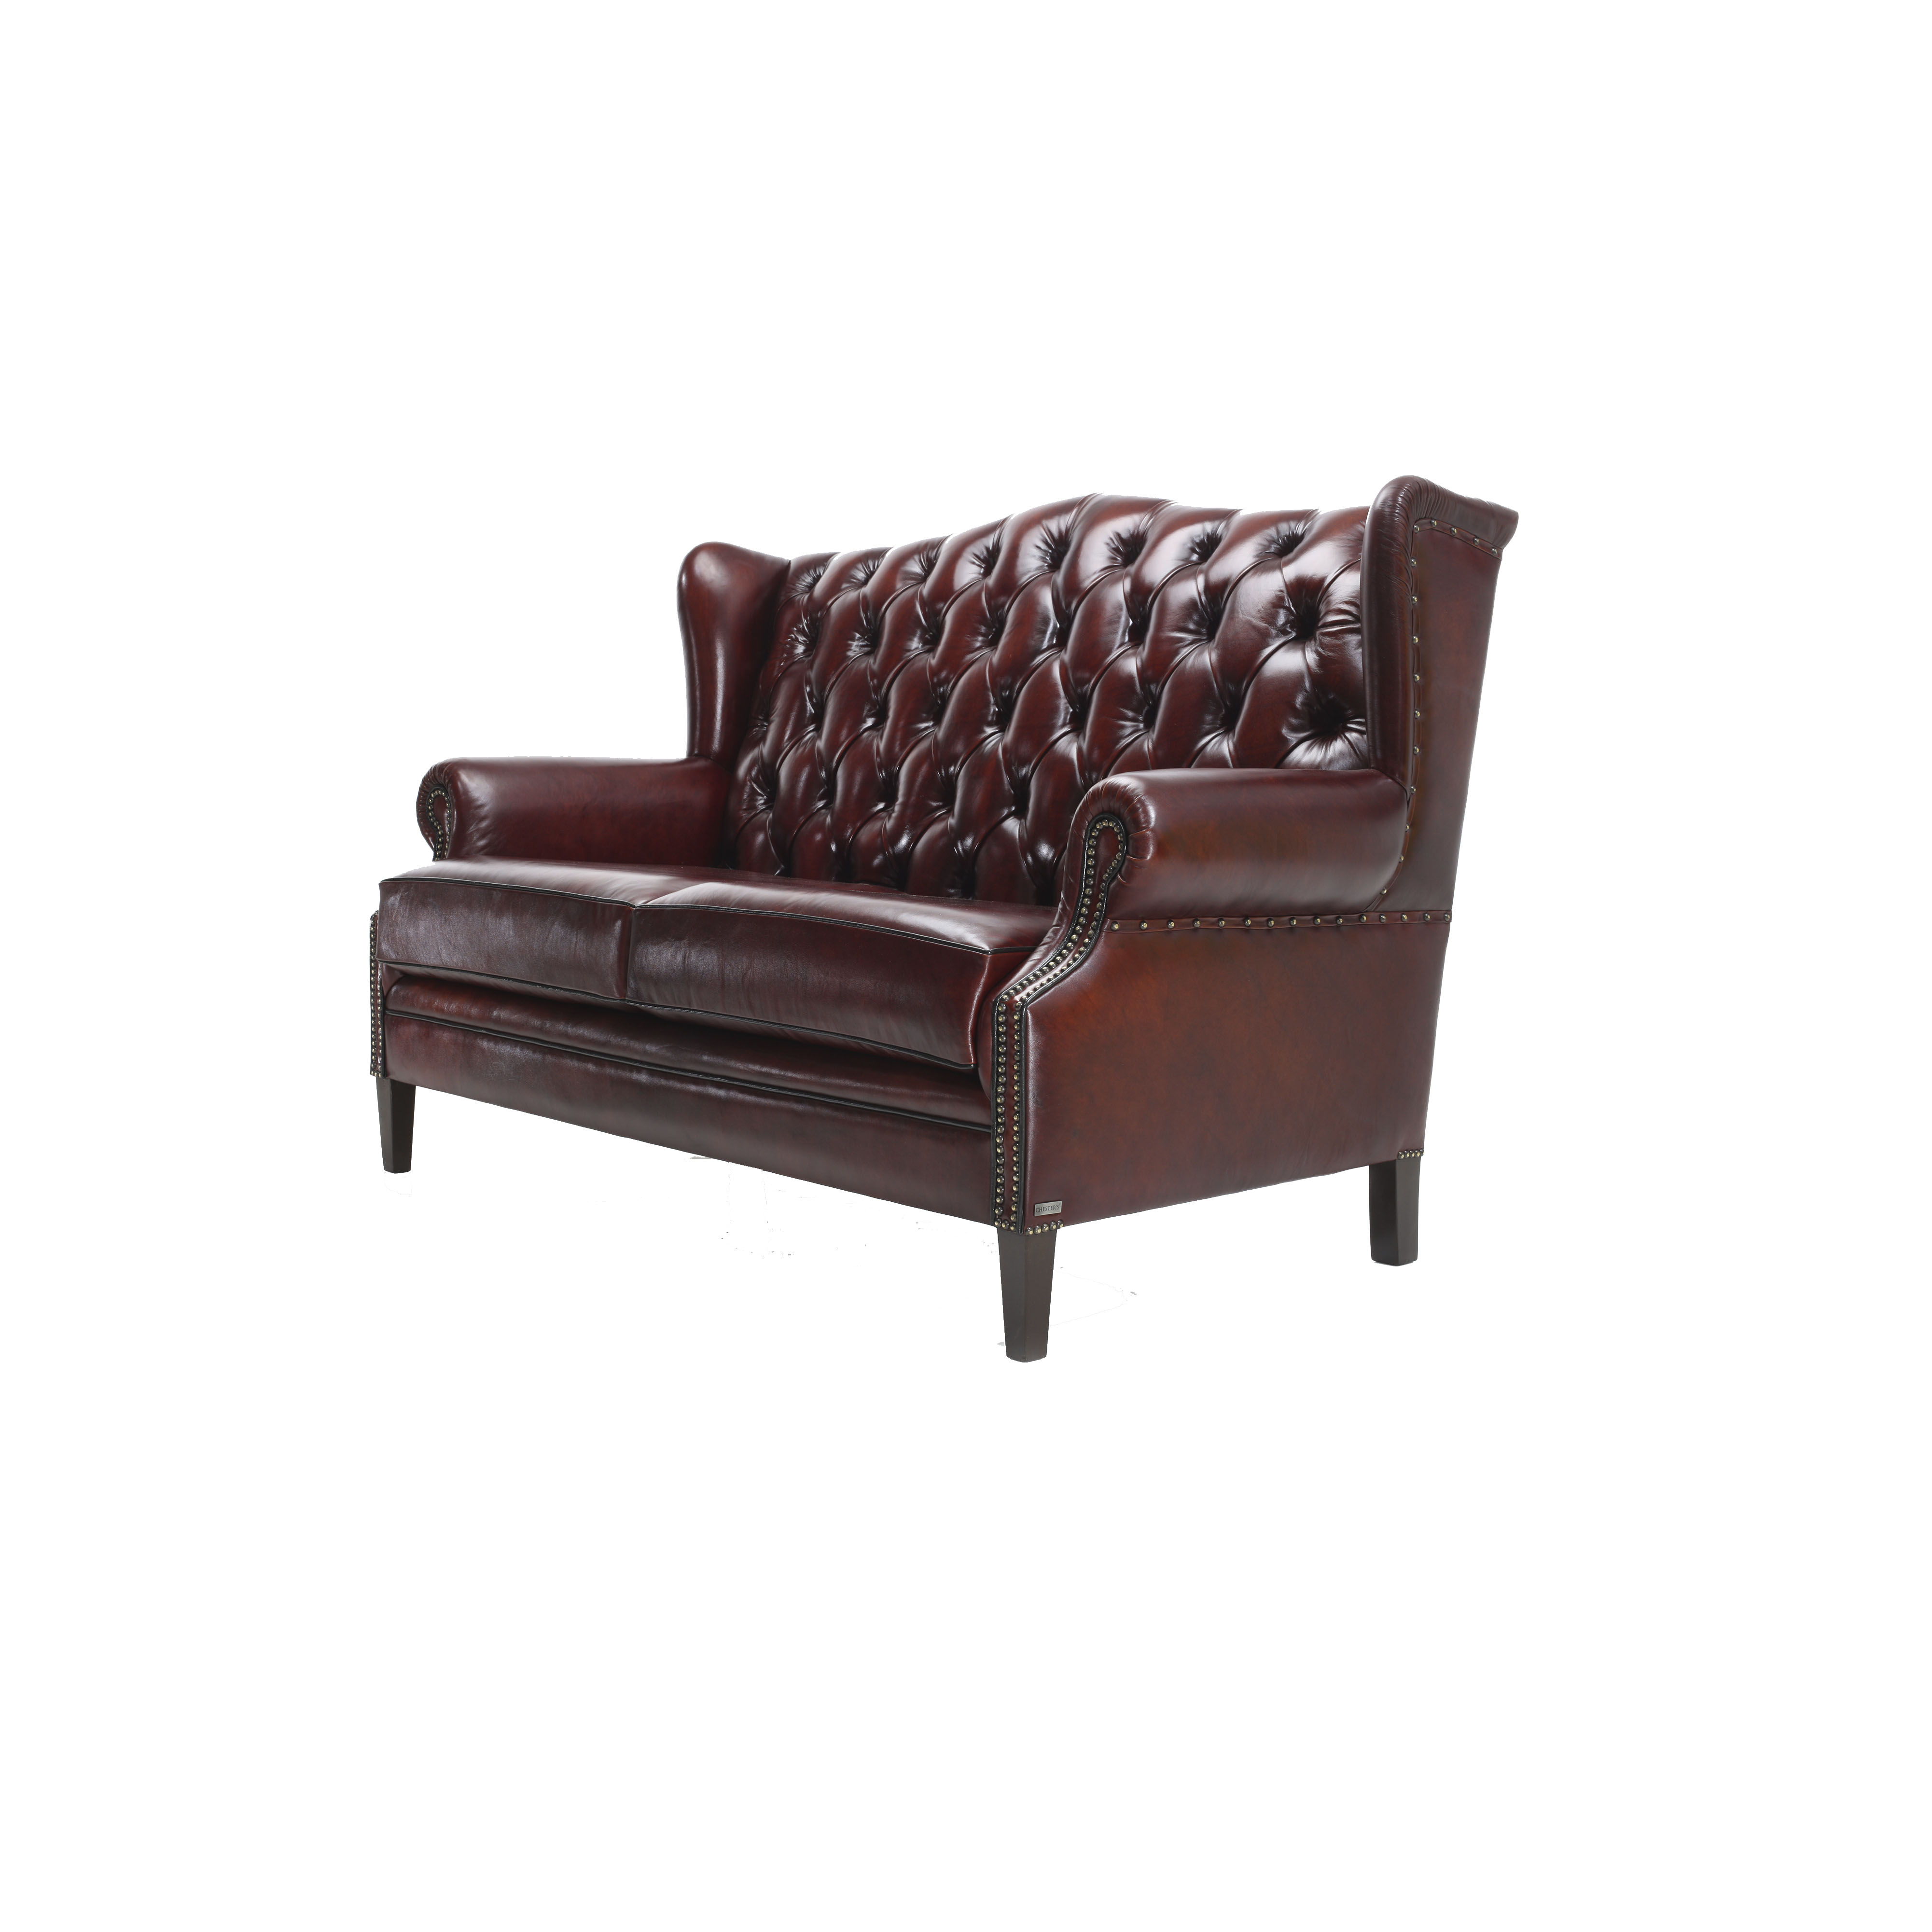 James two seater